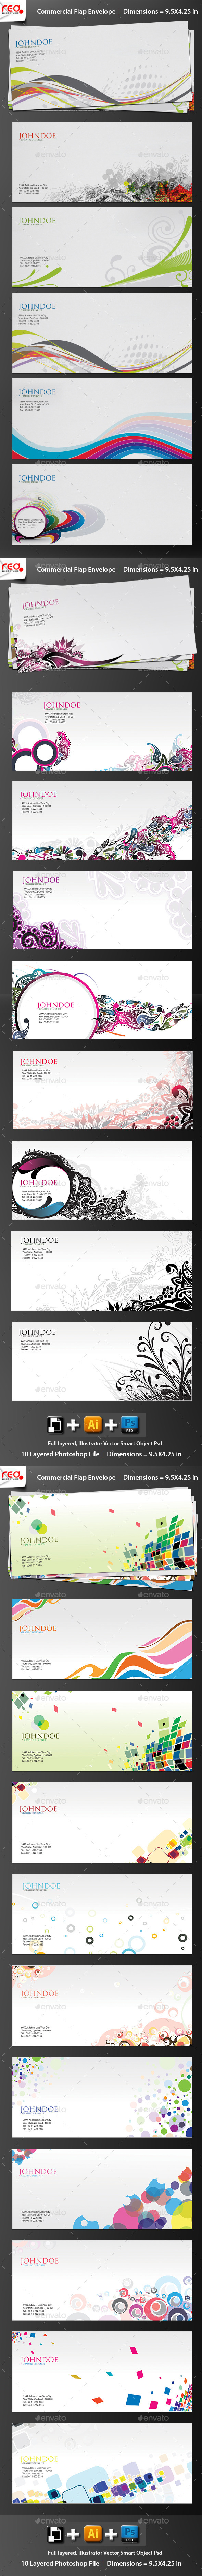 Print Ready Commercial Bussiness Envelop - Stationery Print Templates